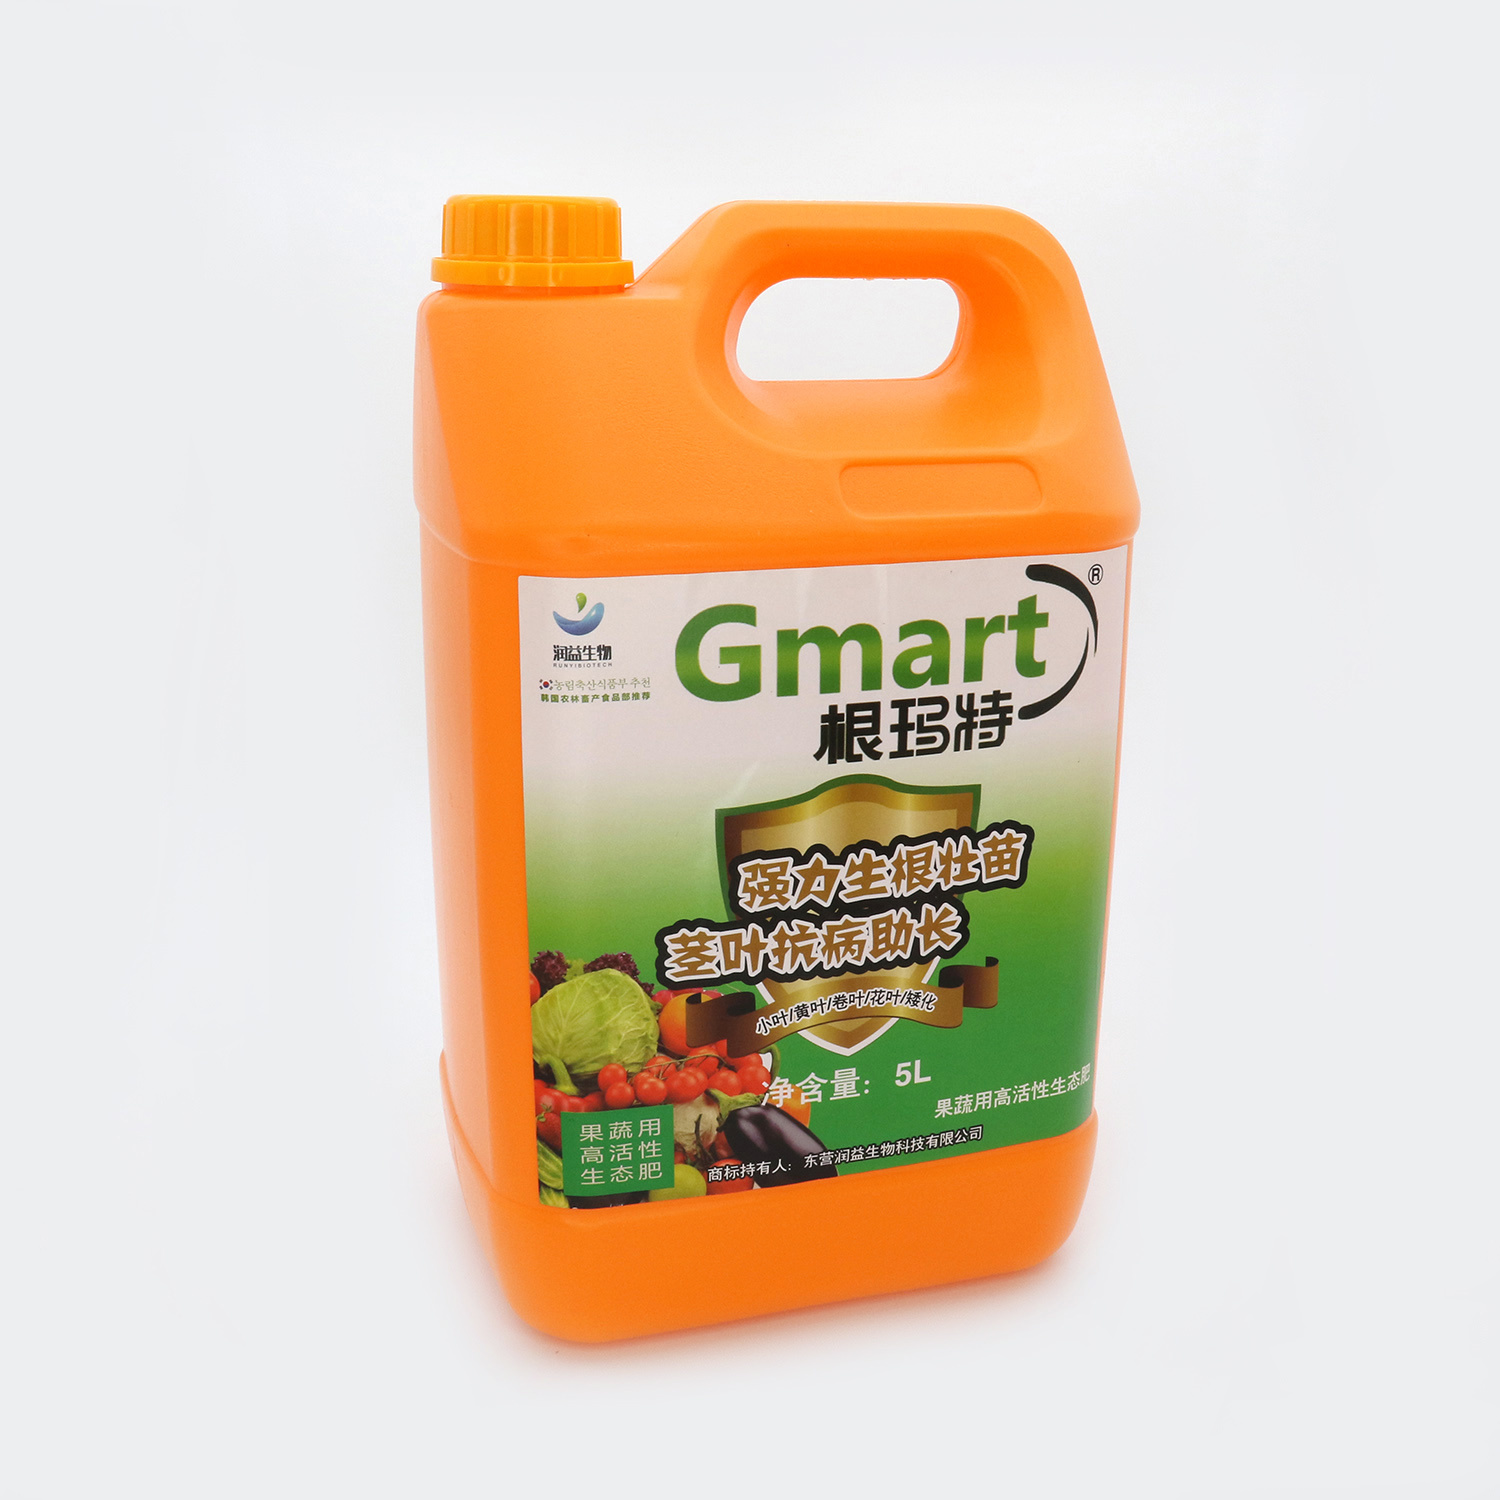 China oem factory design printing adhesive label pesticide sticker label china pesticides labels custom printed